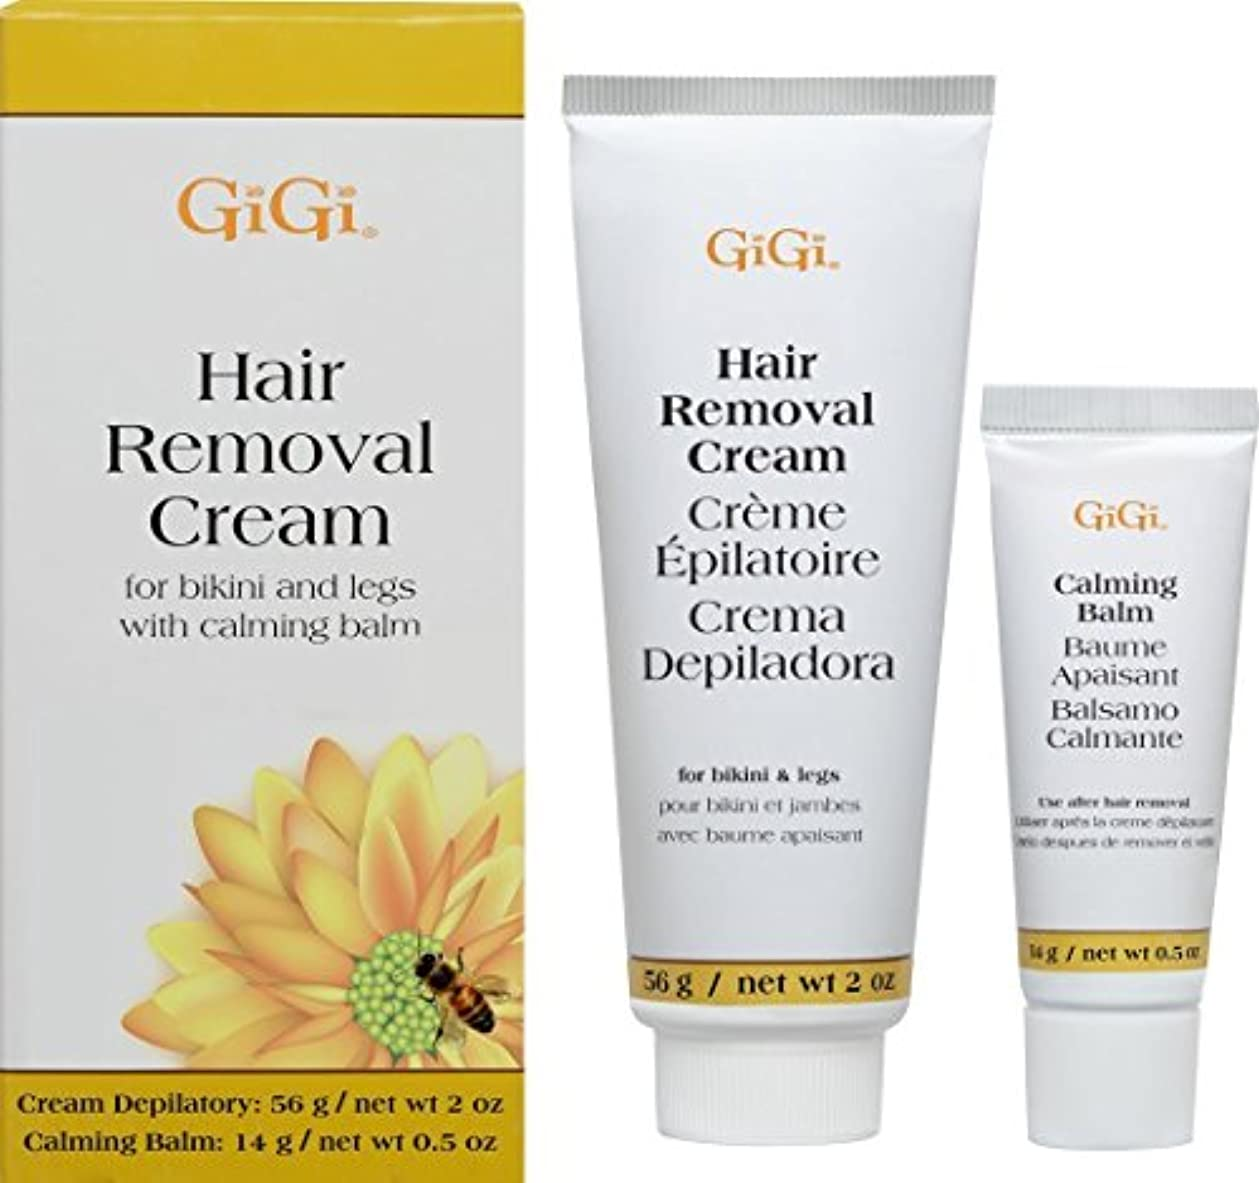 本体順番製造(1) - Gigi Hair Removal Cream W/Balm For Bikini & Legs